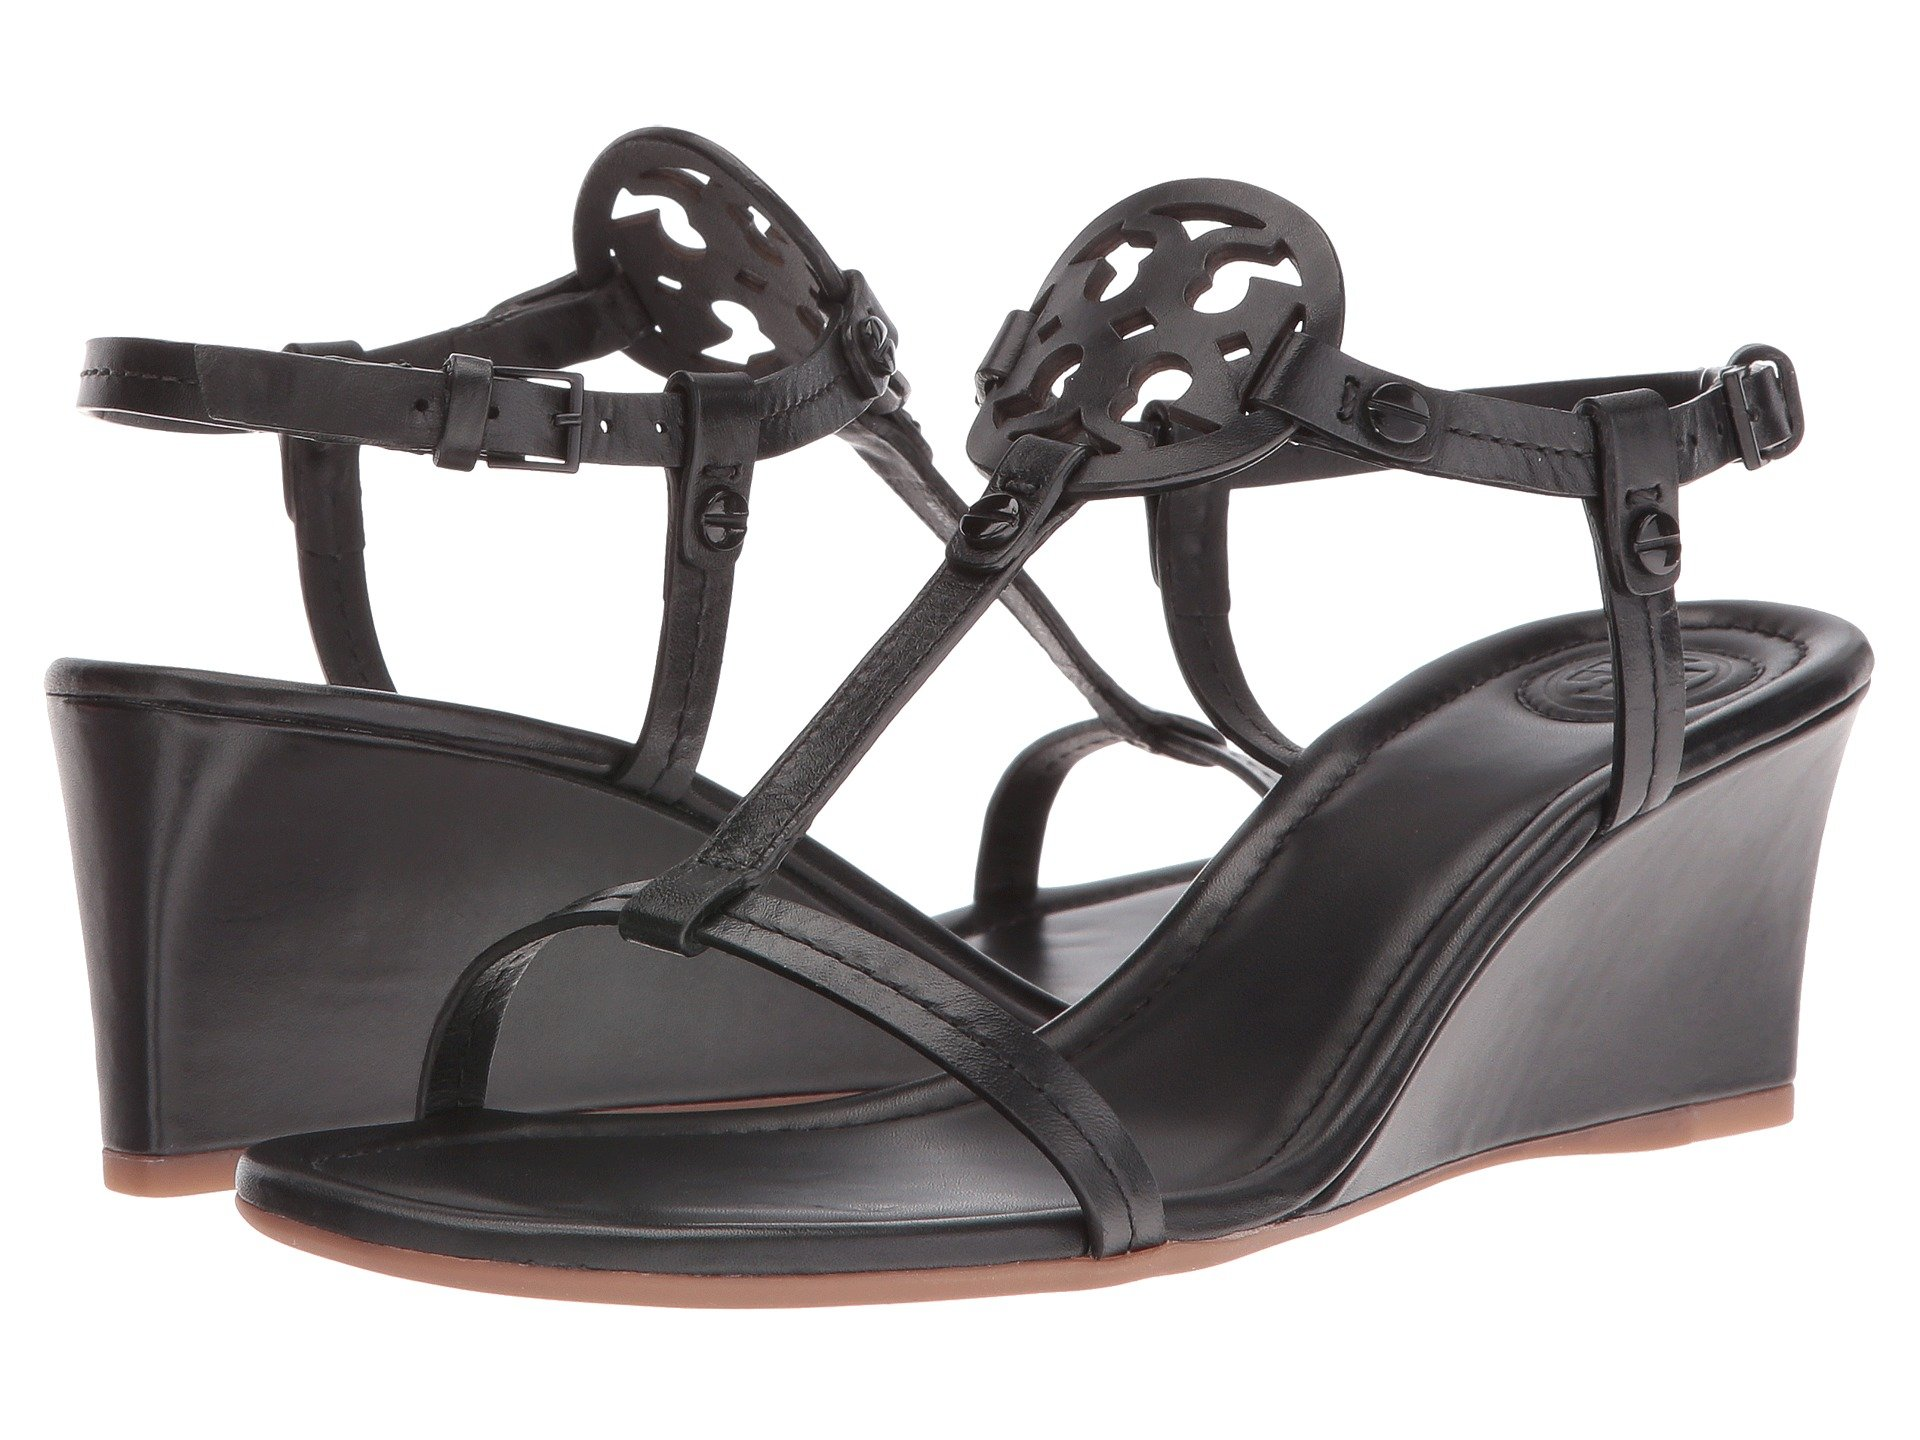 Tory Burch Miller 60mm Wedge Sandal At Zappos Com